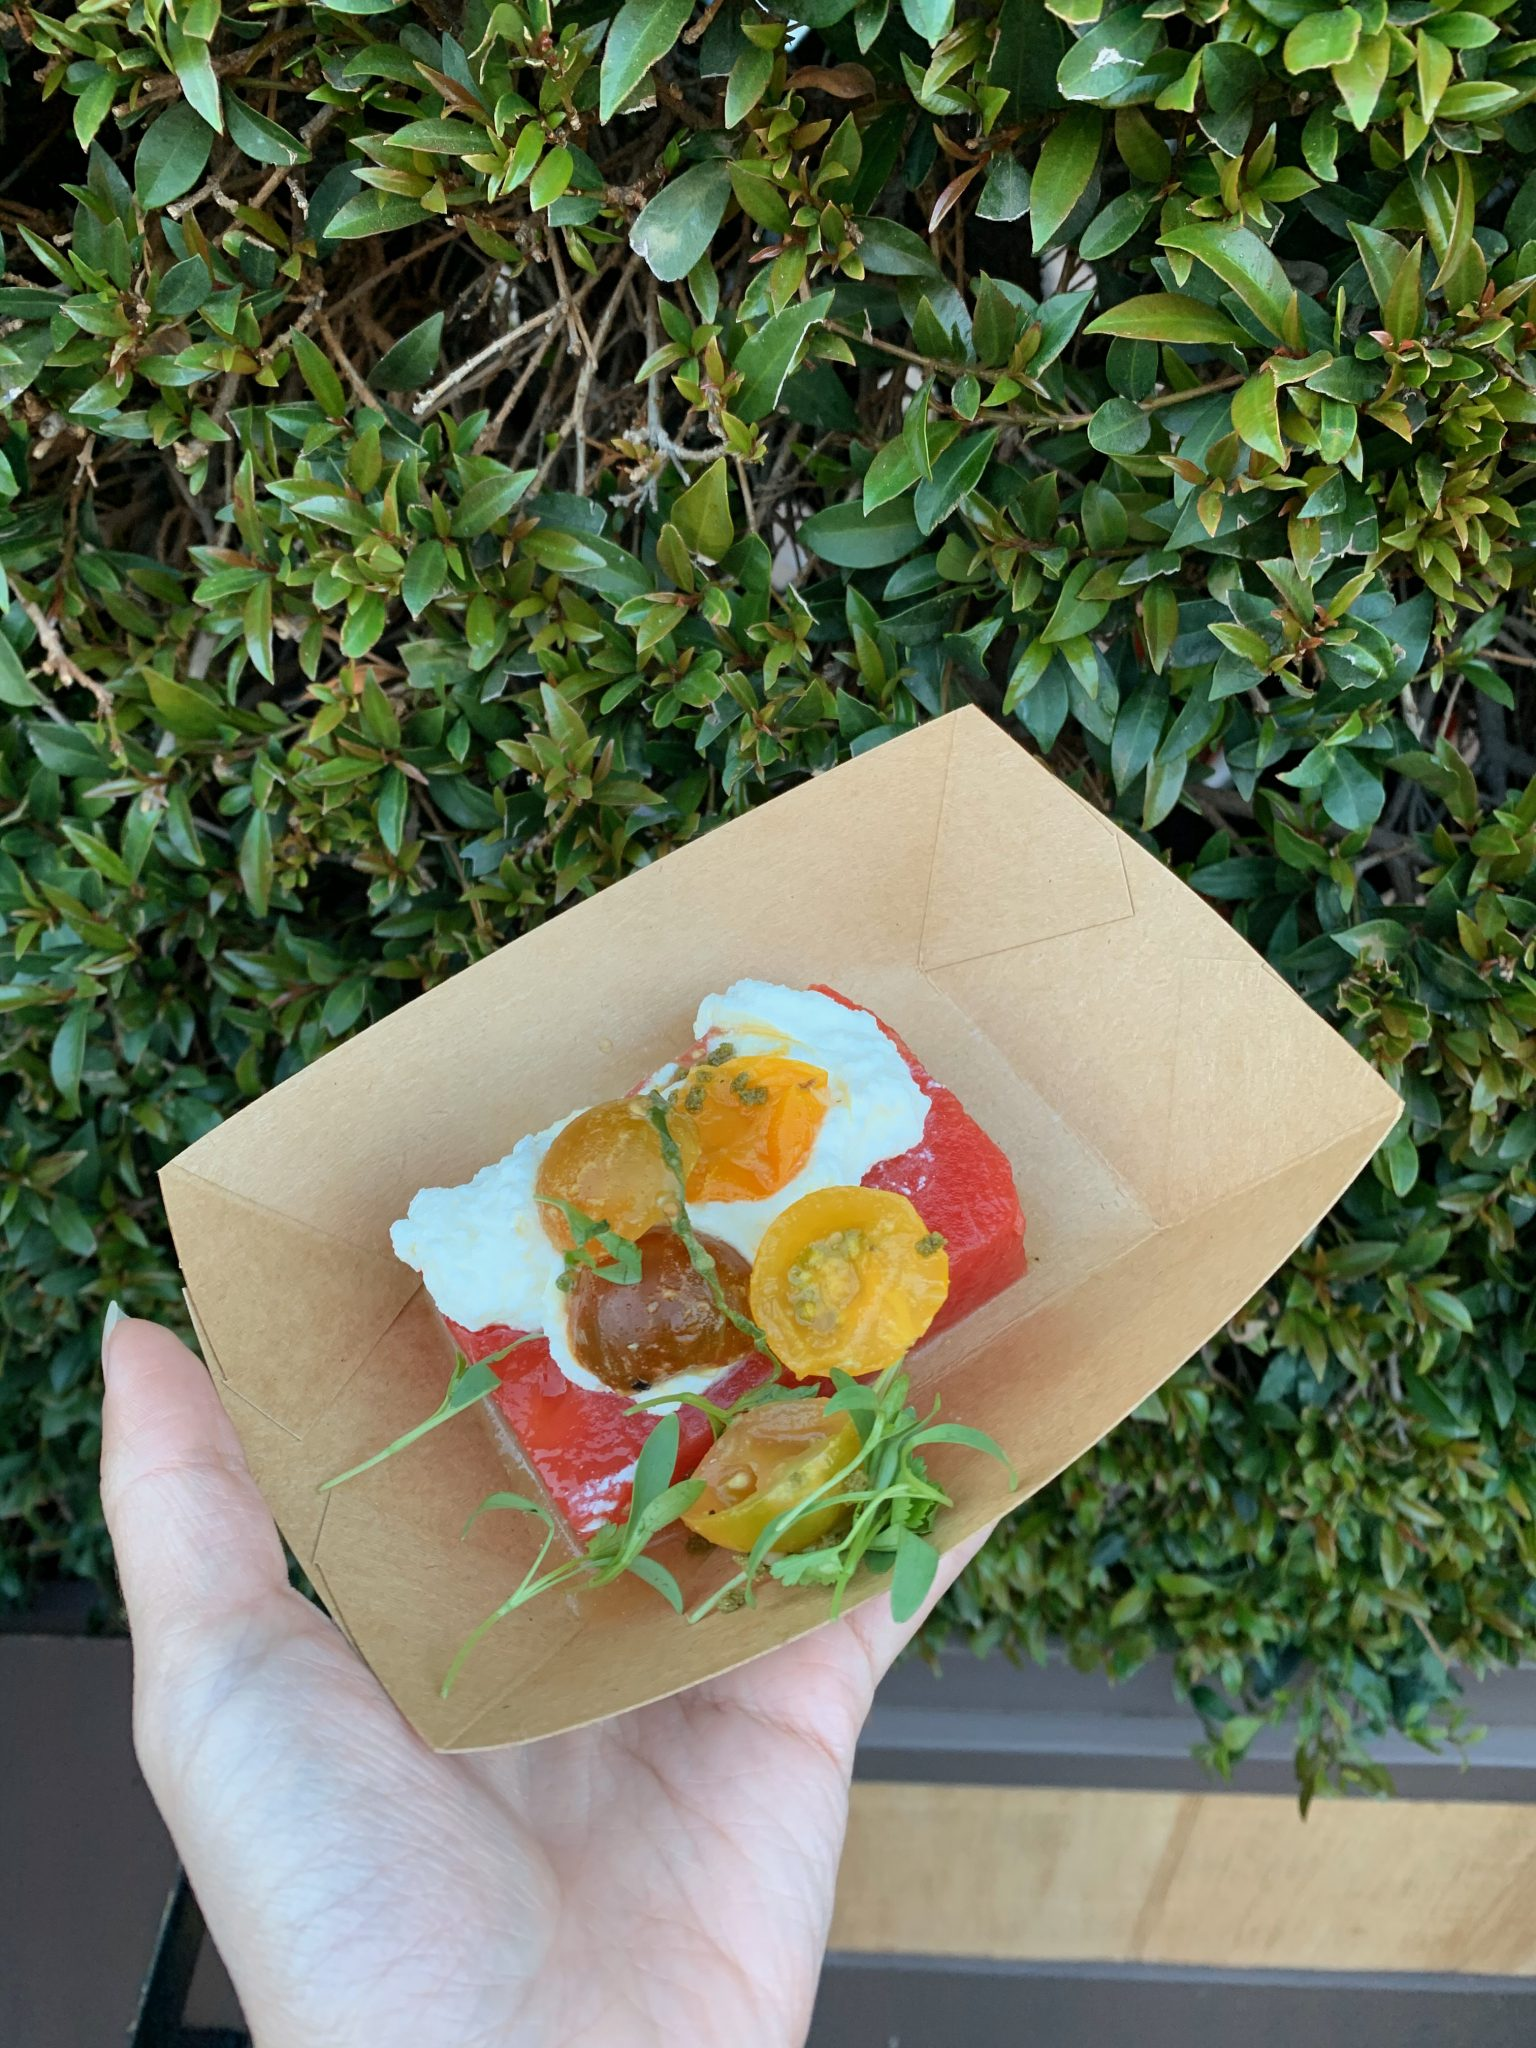 2020 Disney California Adventure Food & Wine Festival guide featured by top US Disney blogger, Marcie and the Mouse: Watermelon Salad at Disney California Food & Wine Festival